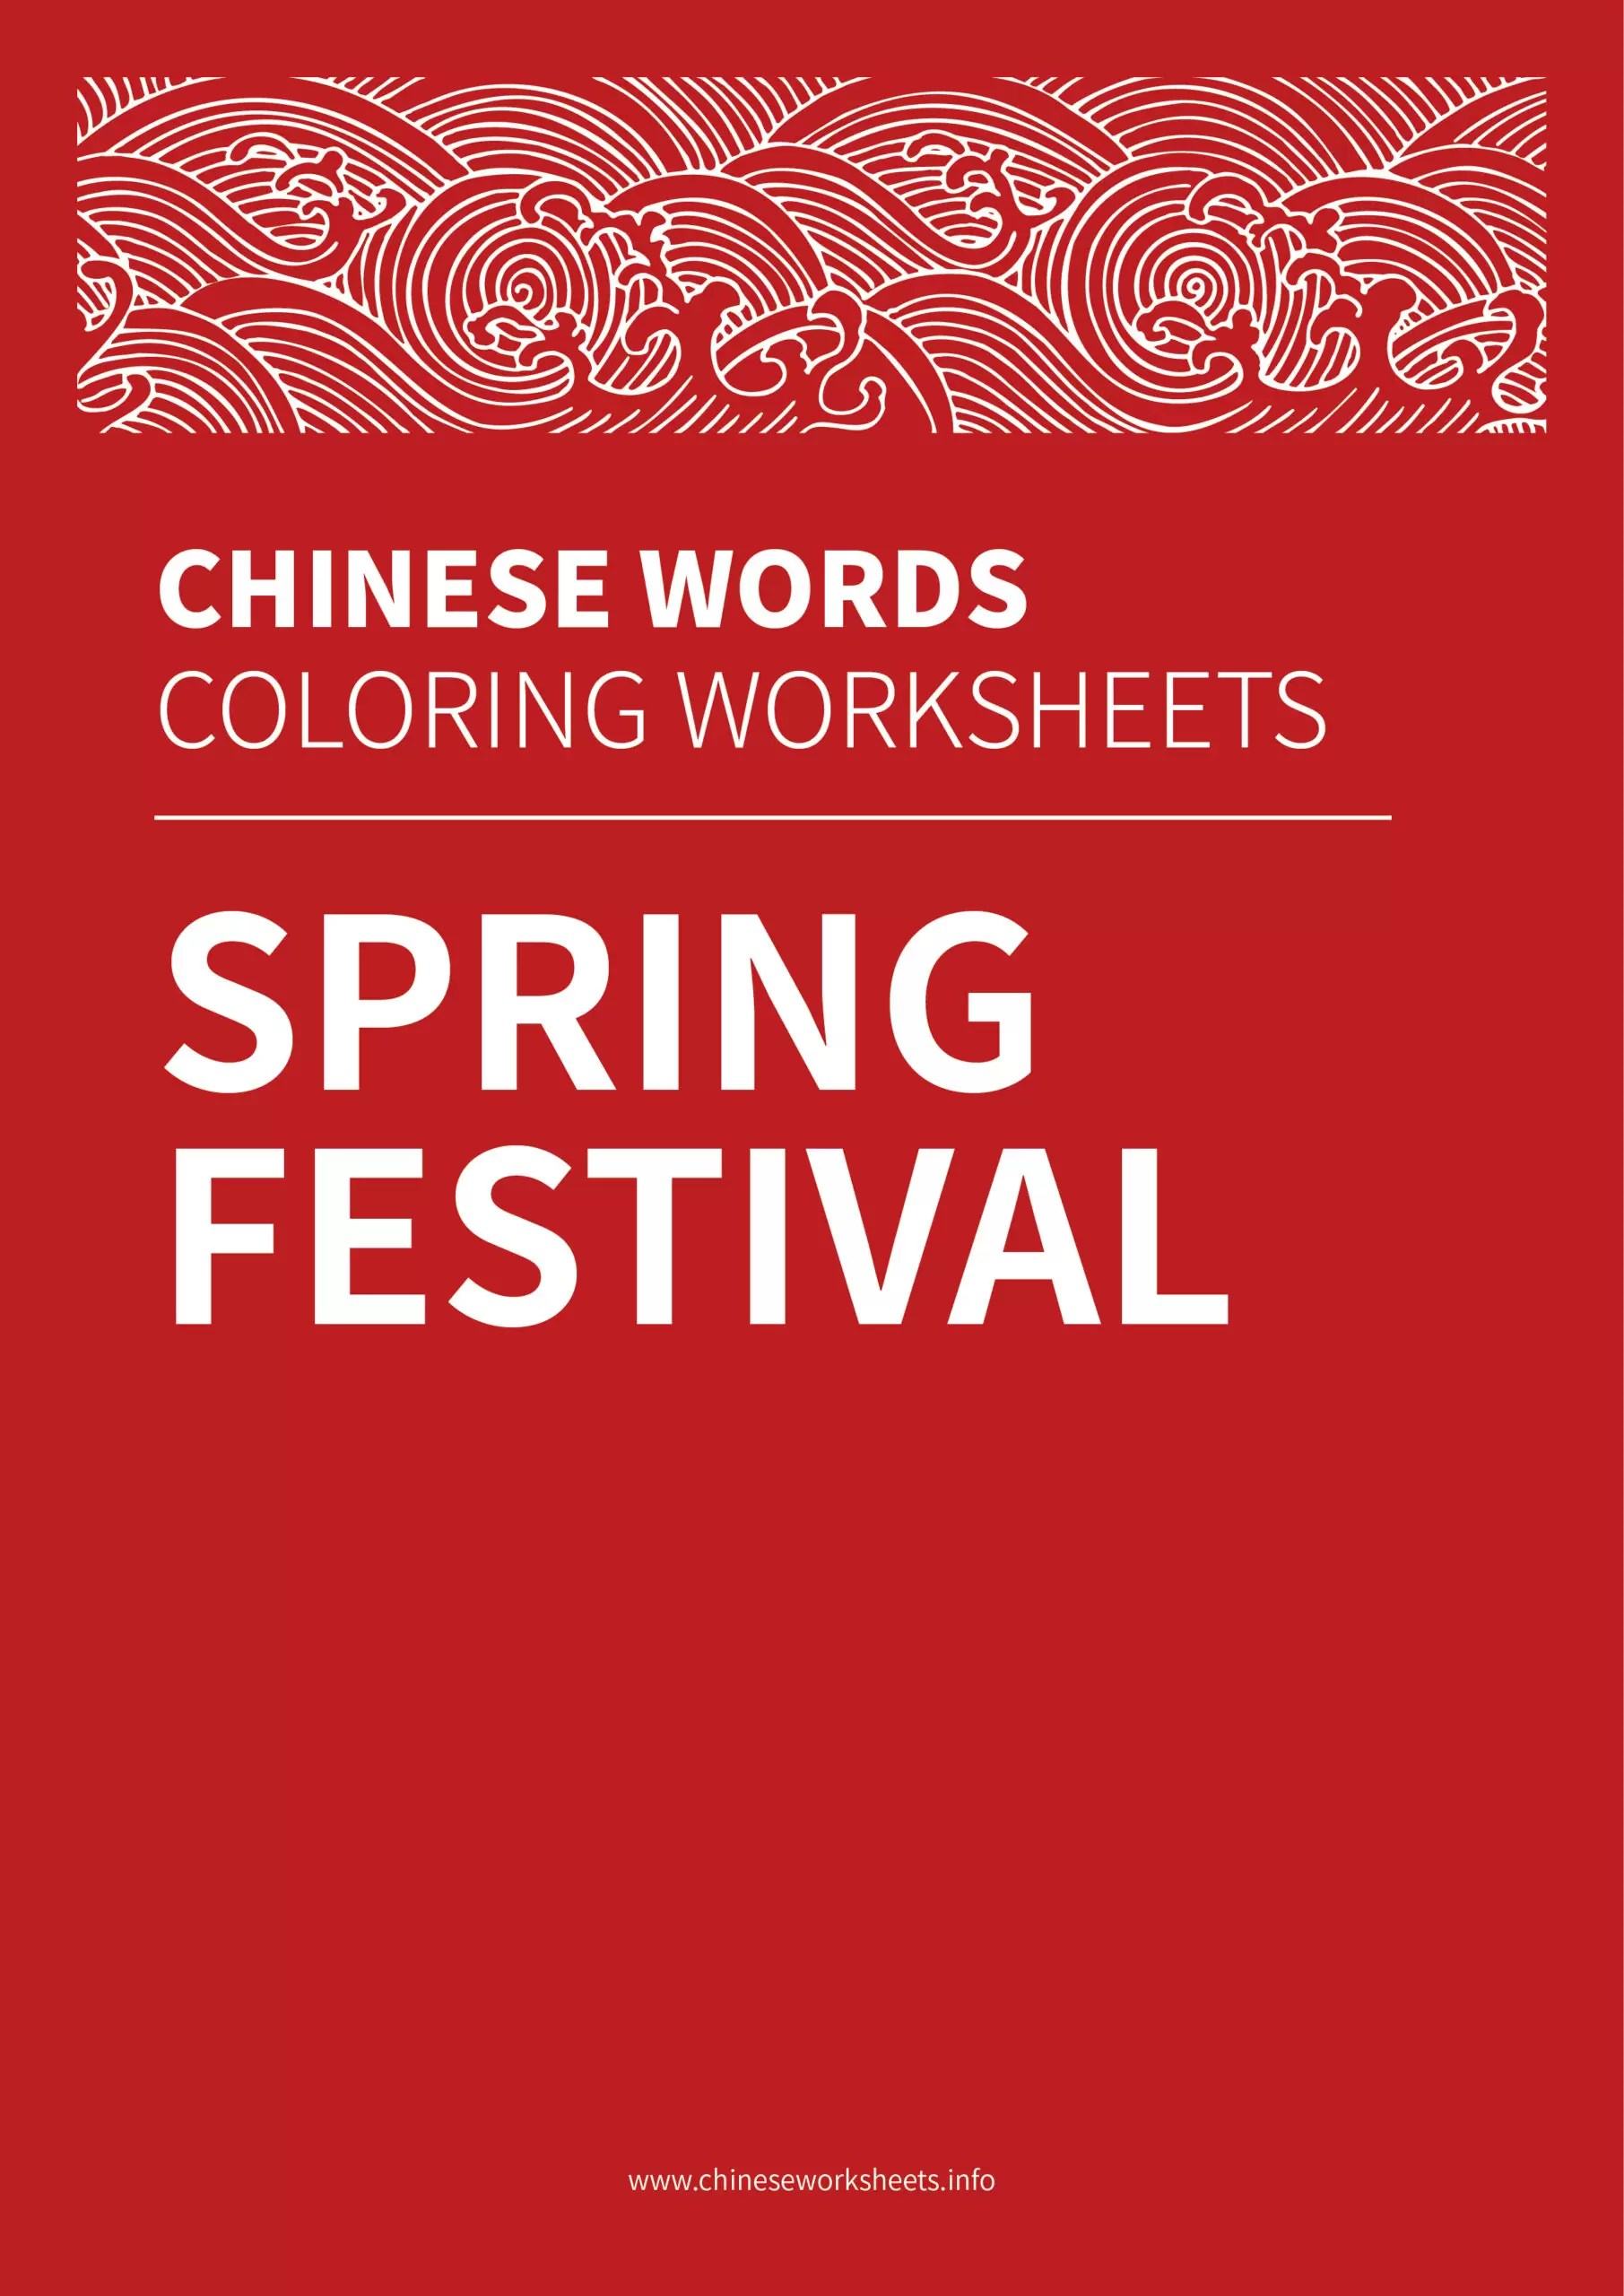 Chinese Words Coloring Worksheets Spring Festival